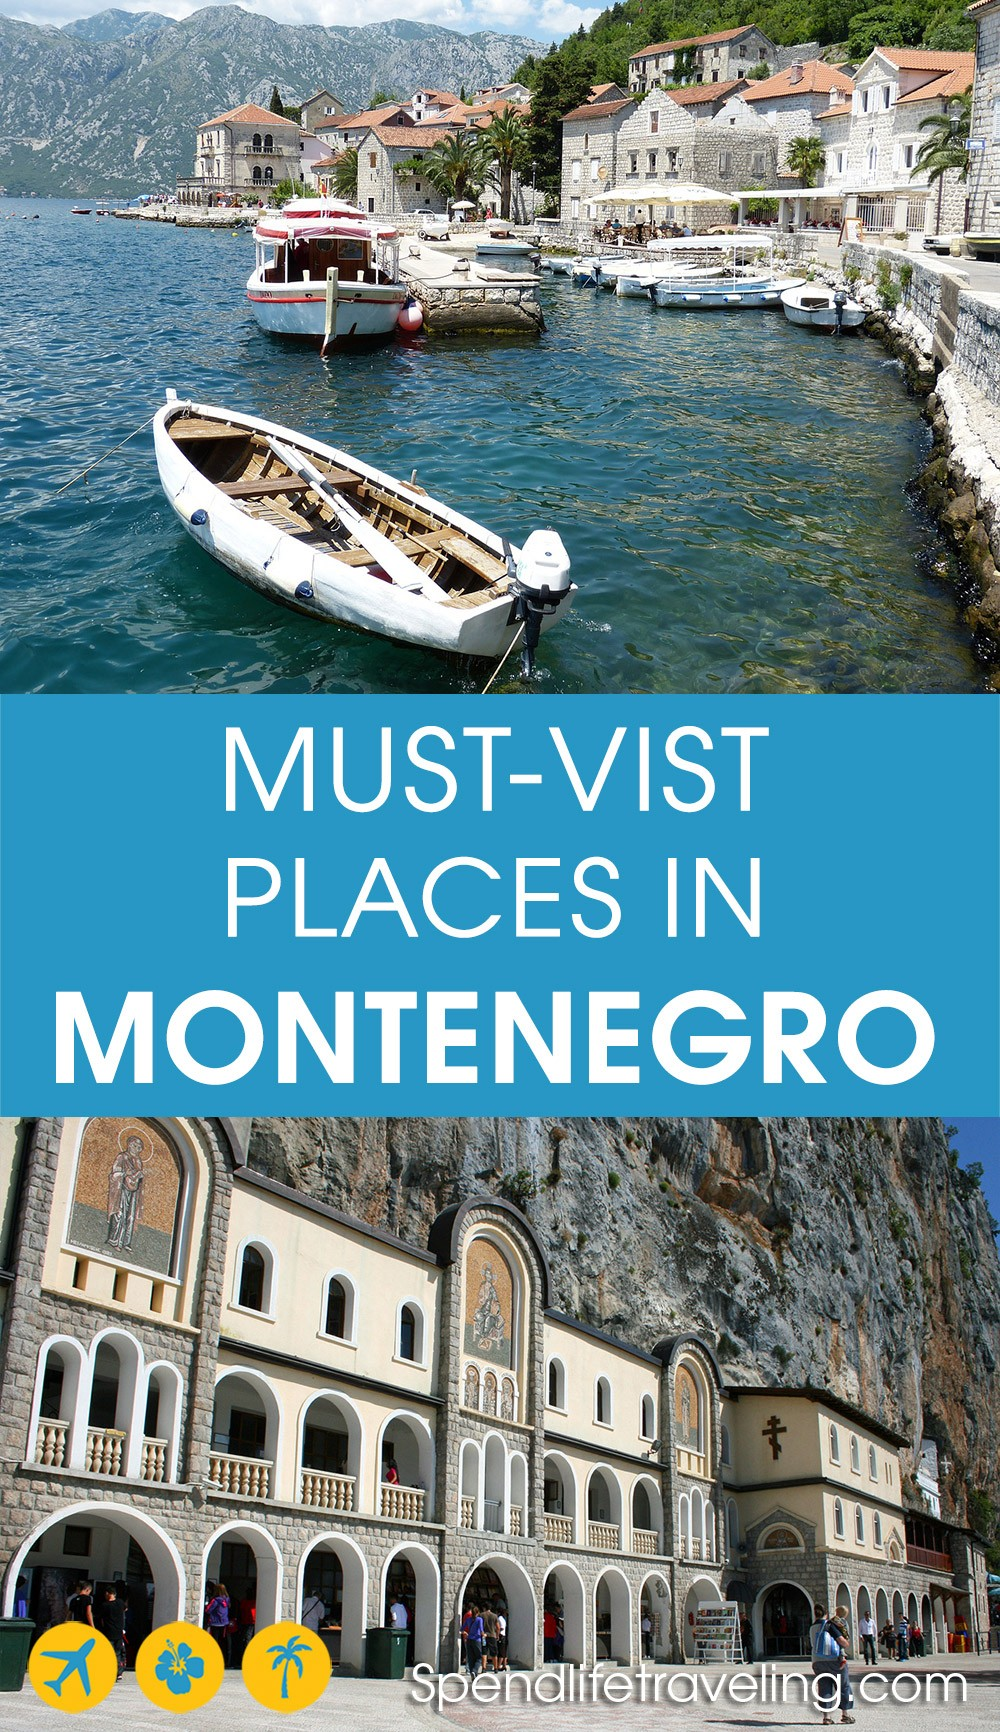 Wondering why you should visit #Montenegro and where to go in Montenegro? Check out this article! #Balkan #travelBalkan